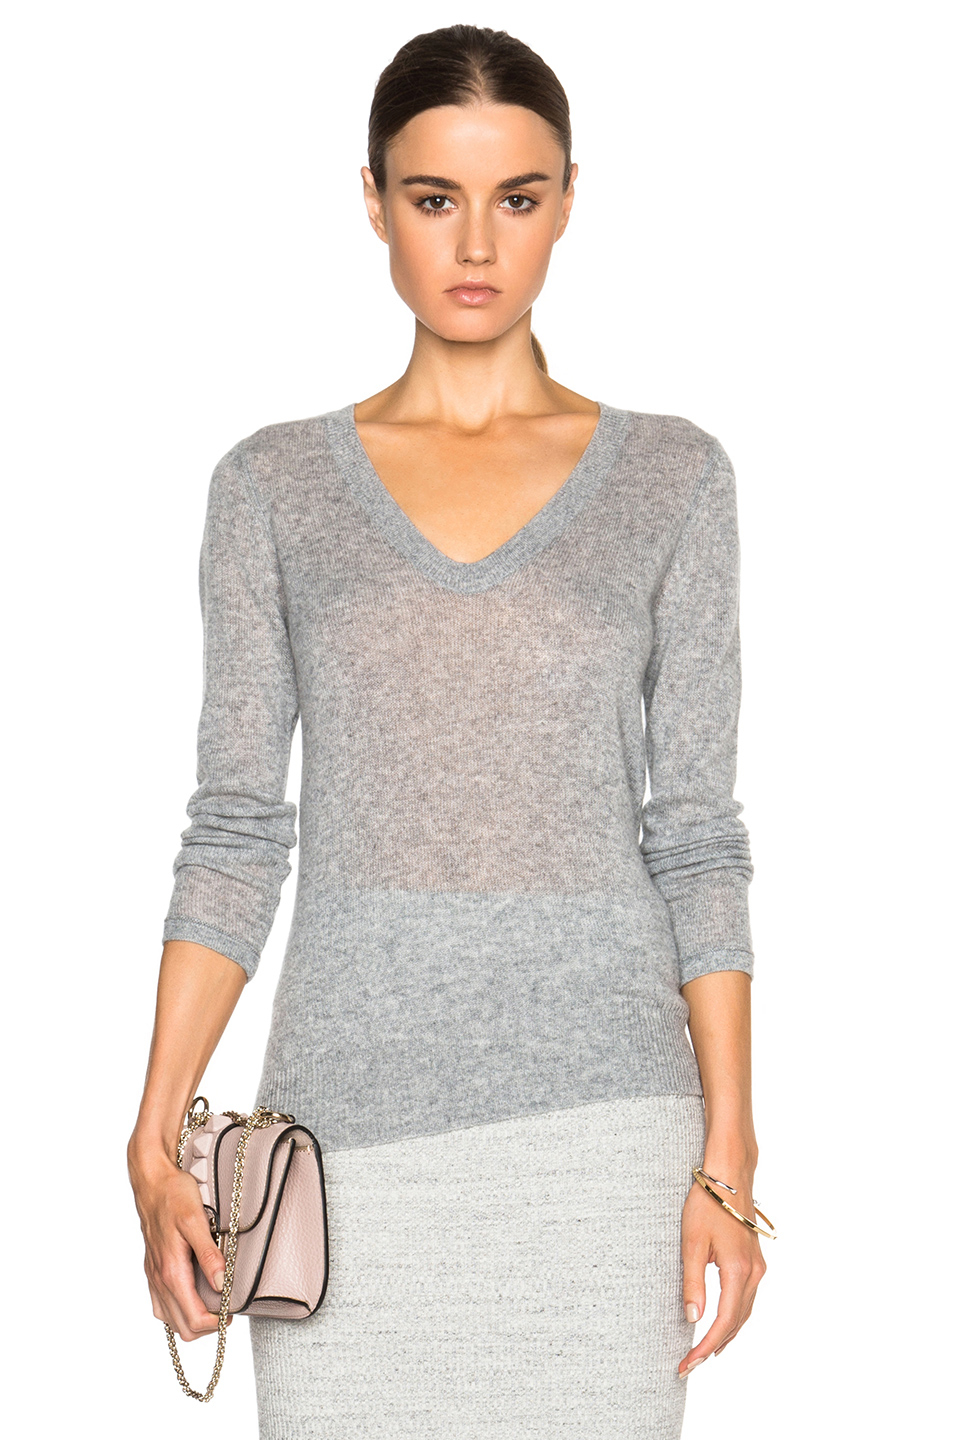 27b6998e63 Lyst - James Perse Cashmere V Neck Sweater in Gray